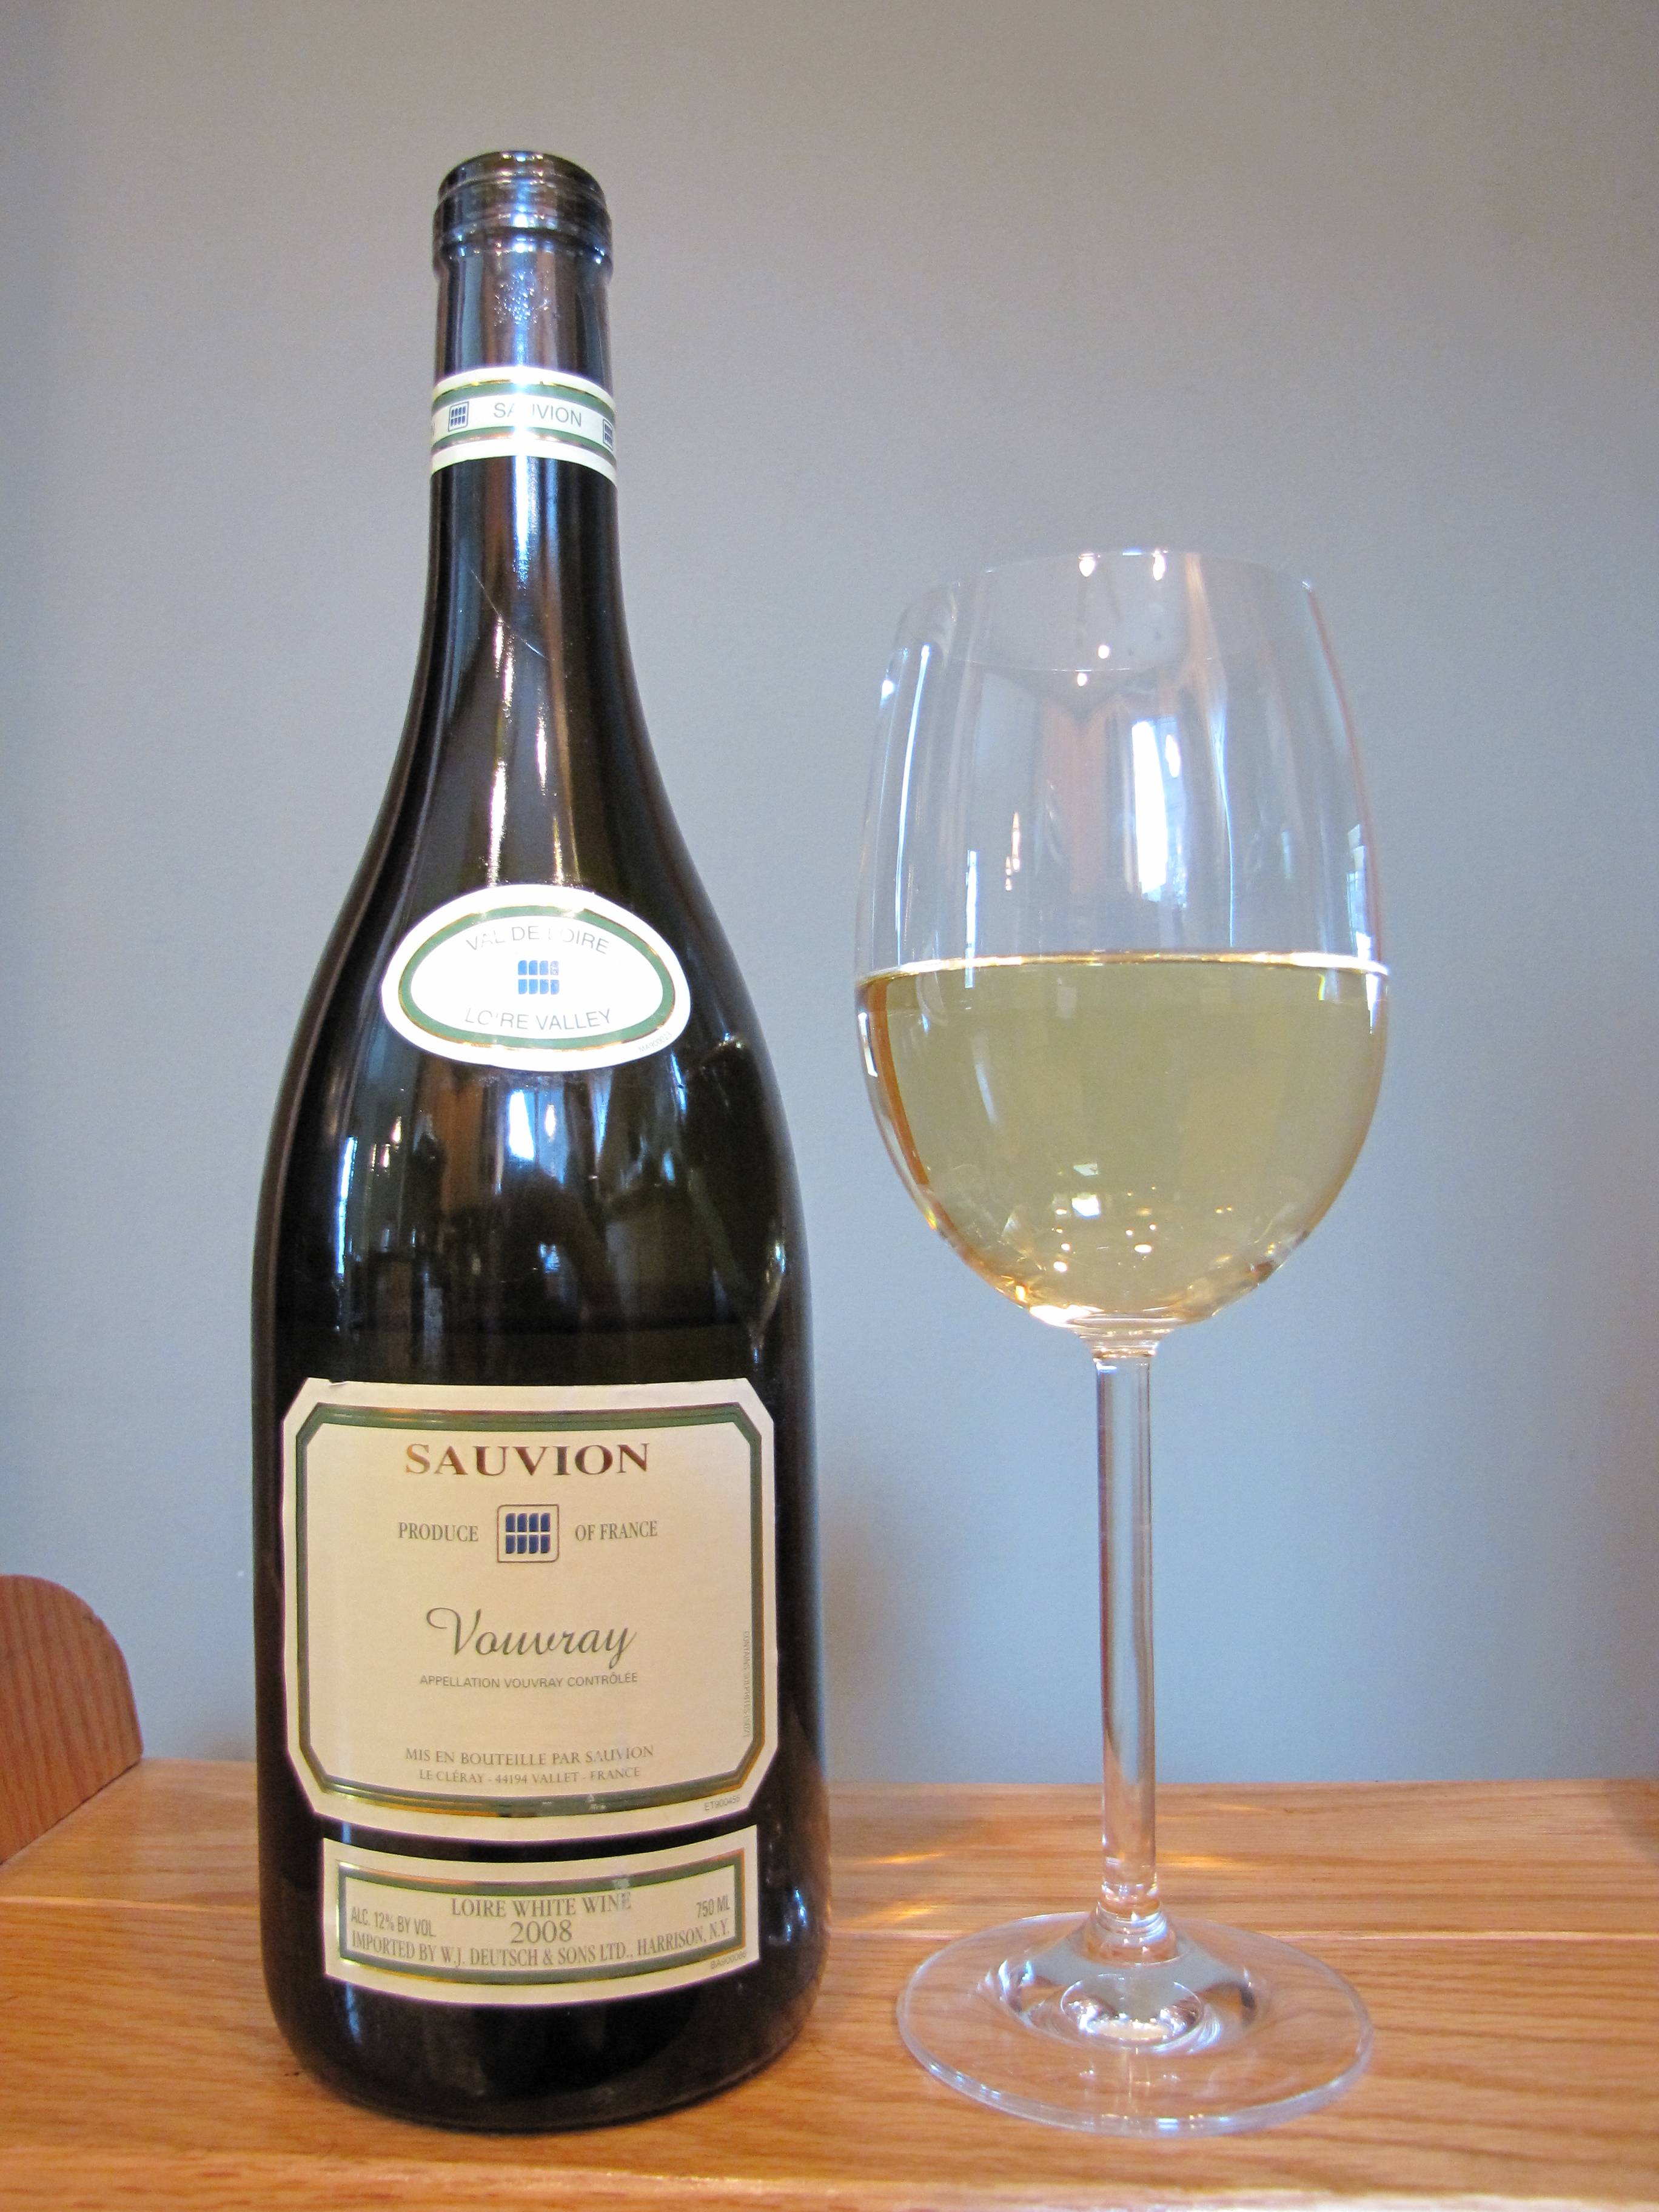 Sauvion Vouvray (2008)